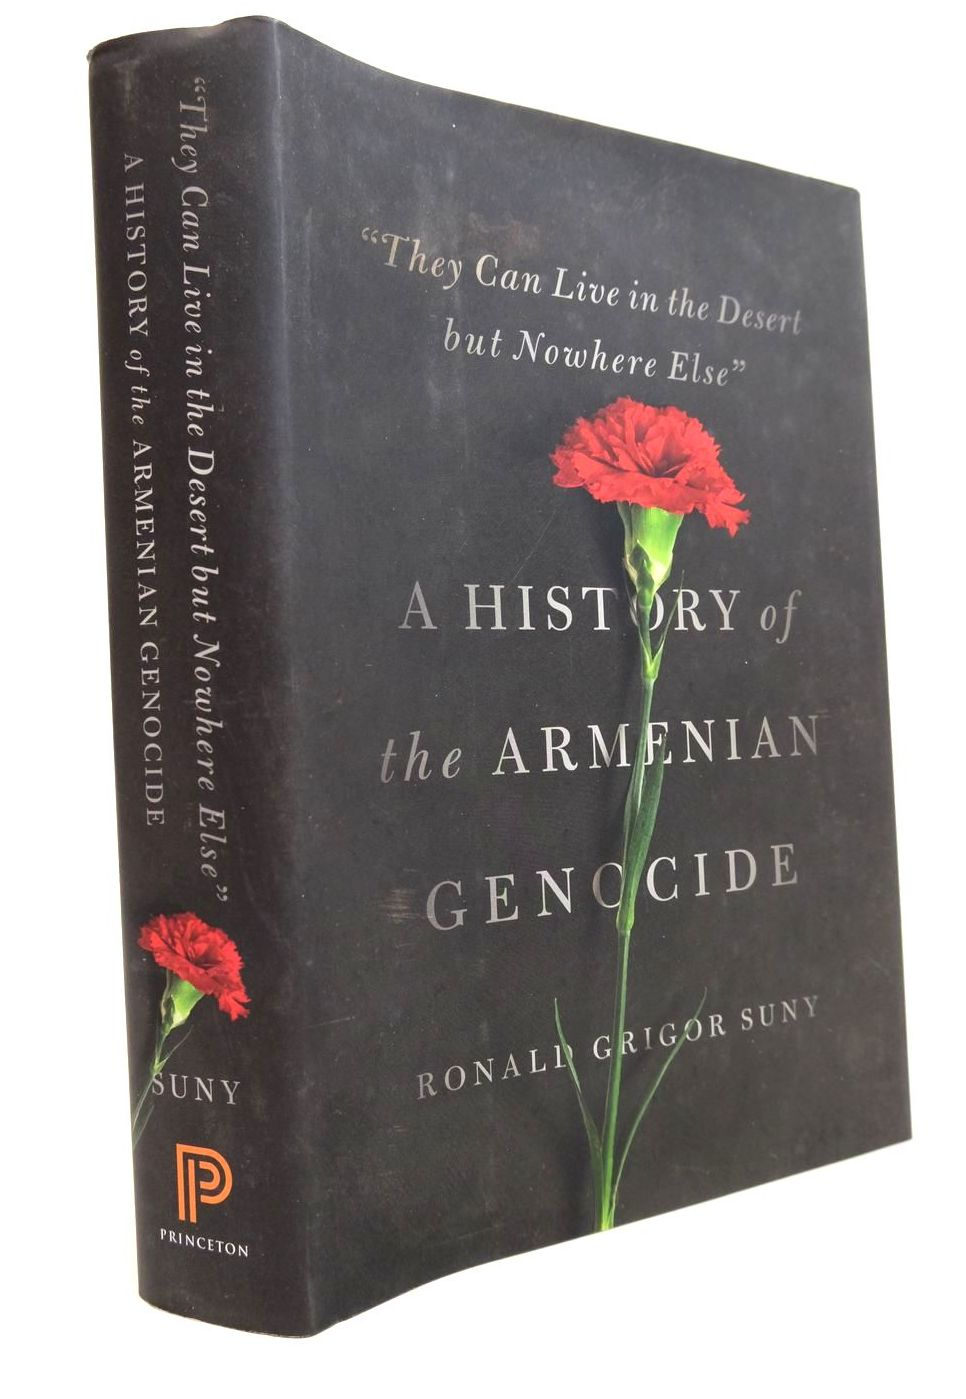 "Photo of ""THEY CAN LIVE IN THE DESERT BUT NOWHERE ELSE"" A HISTORY OF THE ARMENIAN GENOCIDE written by Suny, Ronald Grigor published by Princeton University Press (STOCK CODE: 2132442)  for sale by Stella & Rose's Books"